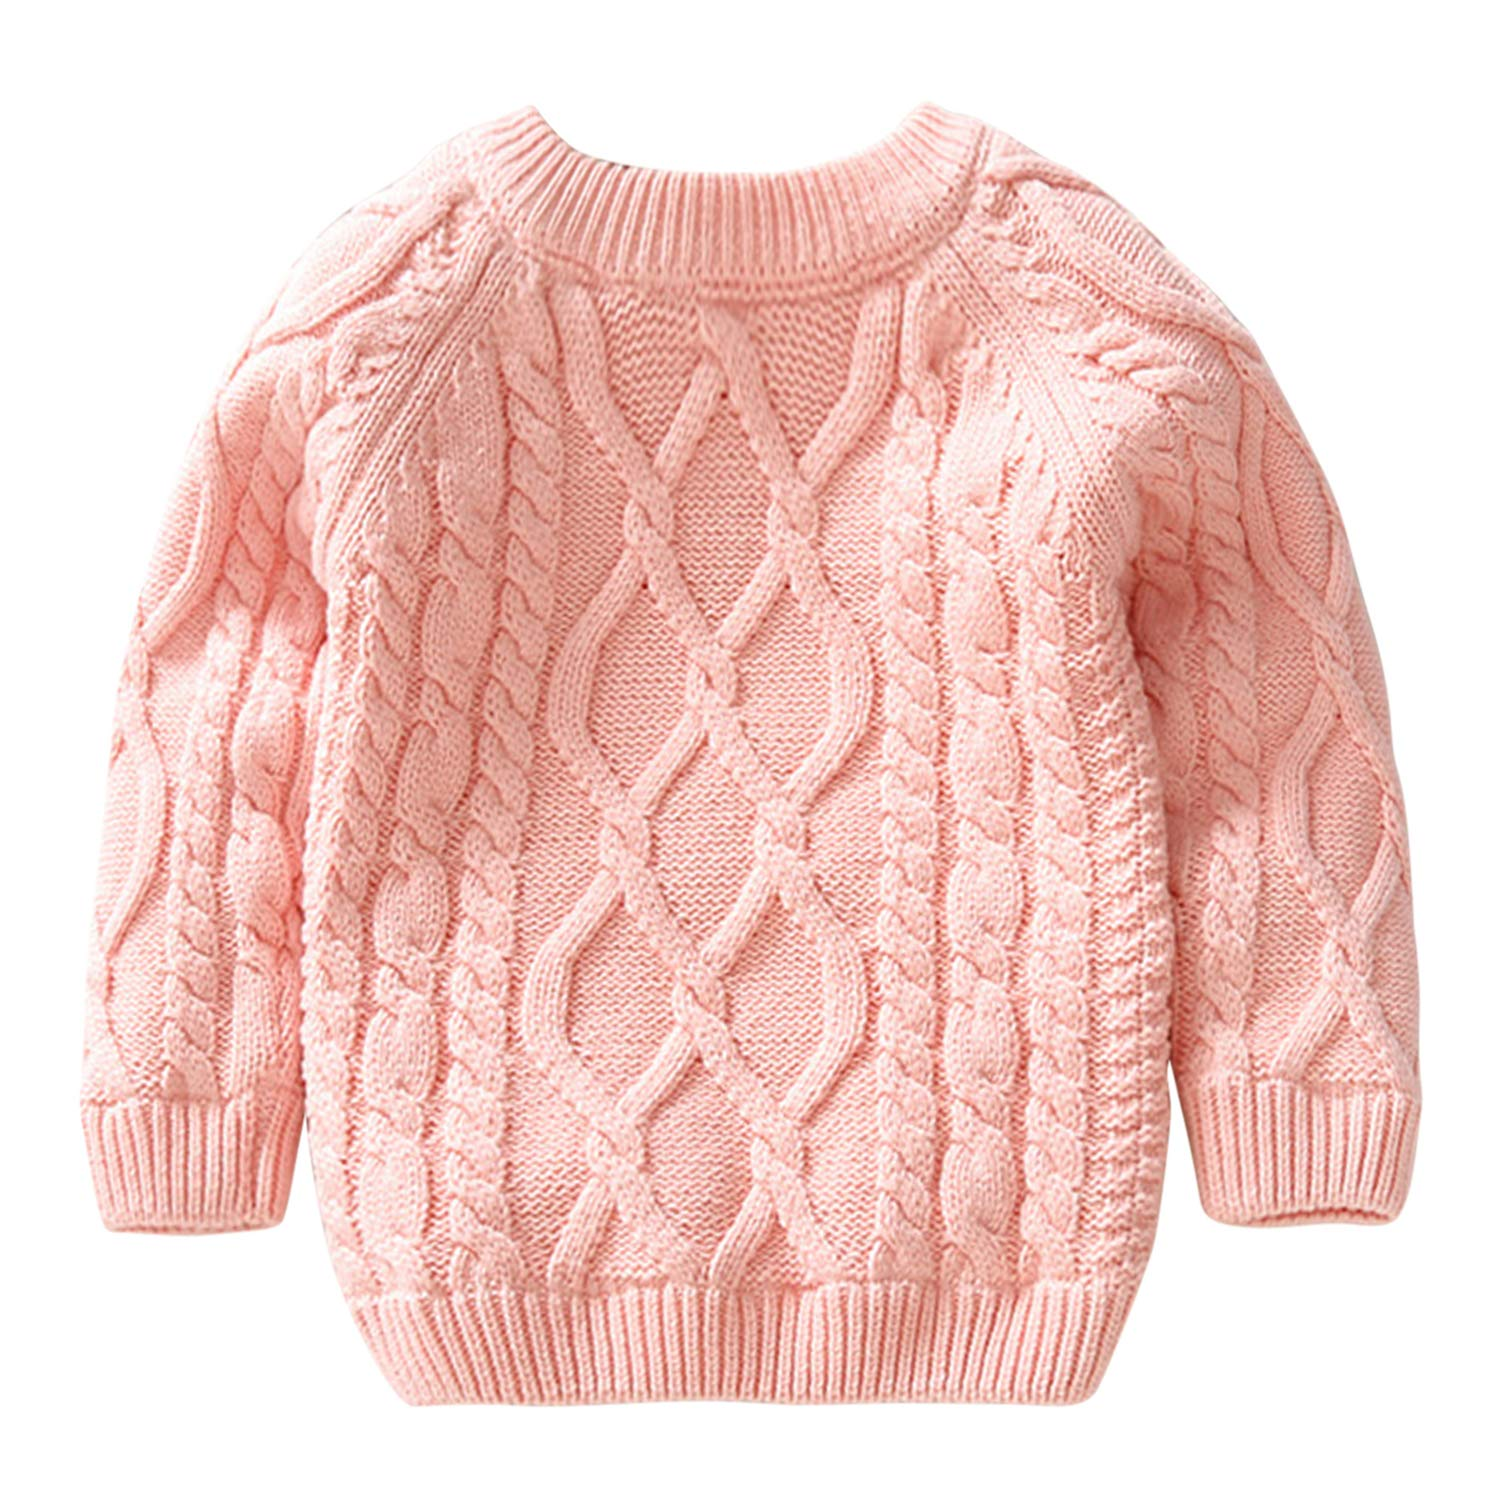 De feuilles Toddler Unisex Baby Cable Knit Pullover Sweater Chunky Knitted Jumper Knitwear with Warm Lining